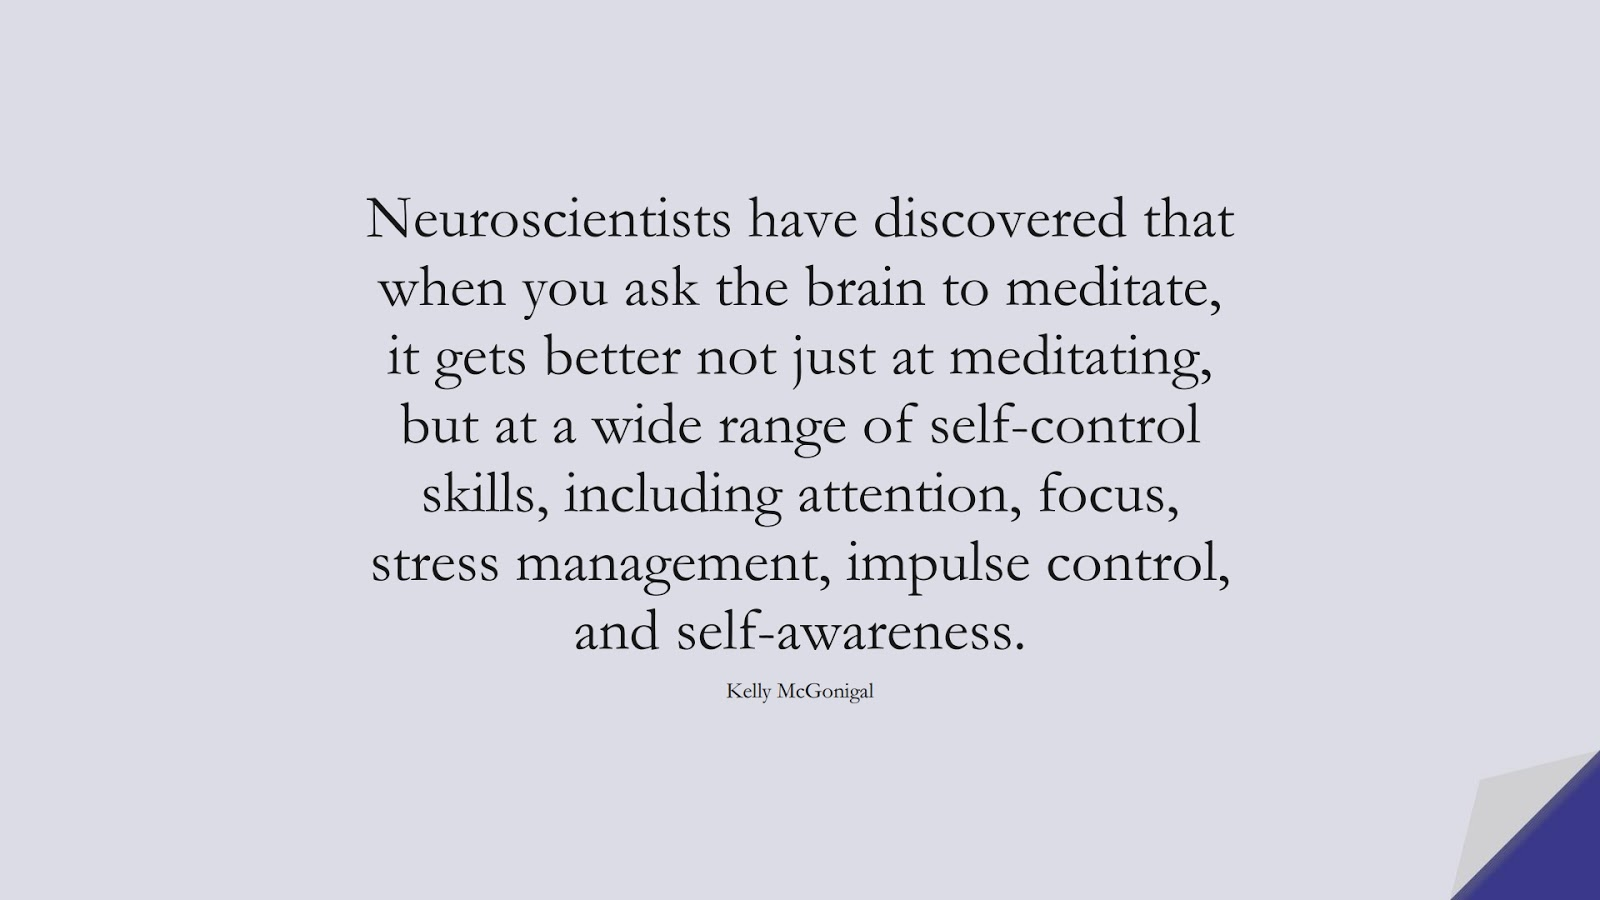 Neuroscientists have discovered that when you ask the brain to meditate, it gets better not just at meditating, but at a wide range of self-control skills, including attention, focus, stress management, impulse control, and self-awareness. (Kelly McGonigal);  #StressQuotes